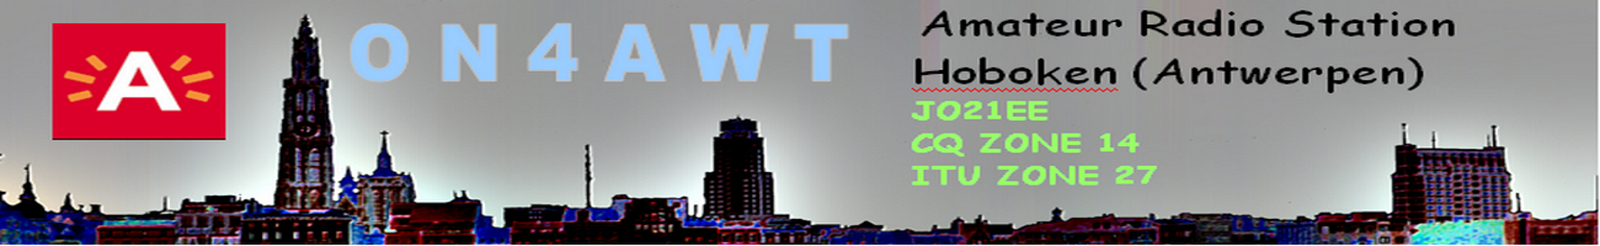 on4awt_main_logo_3_1600x246.jpg